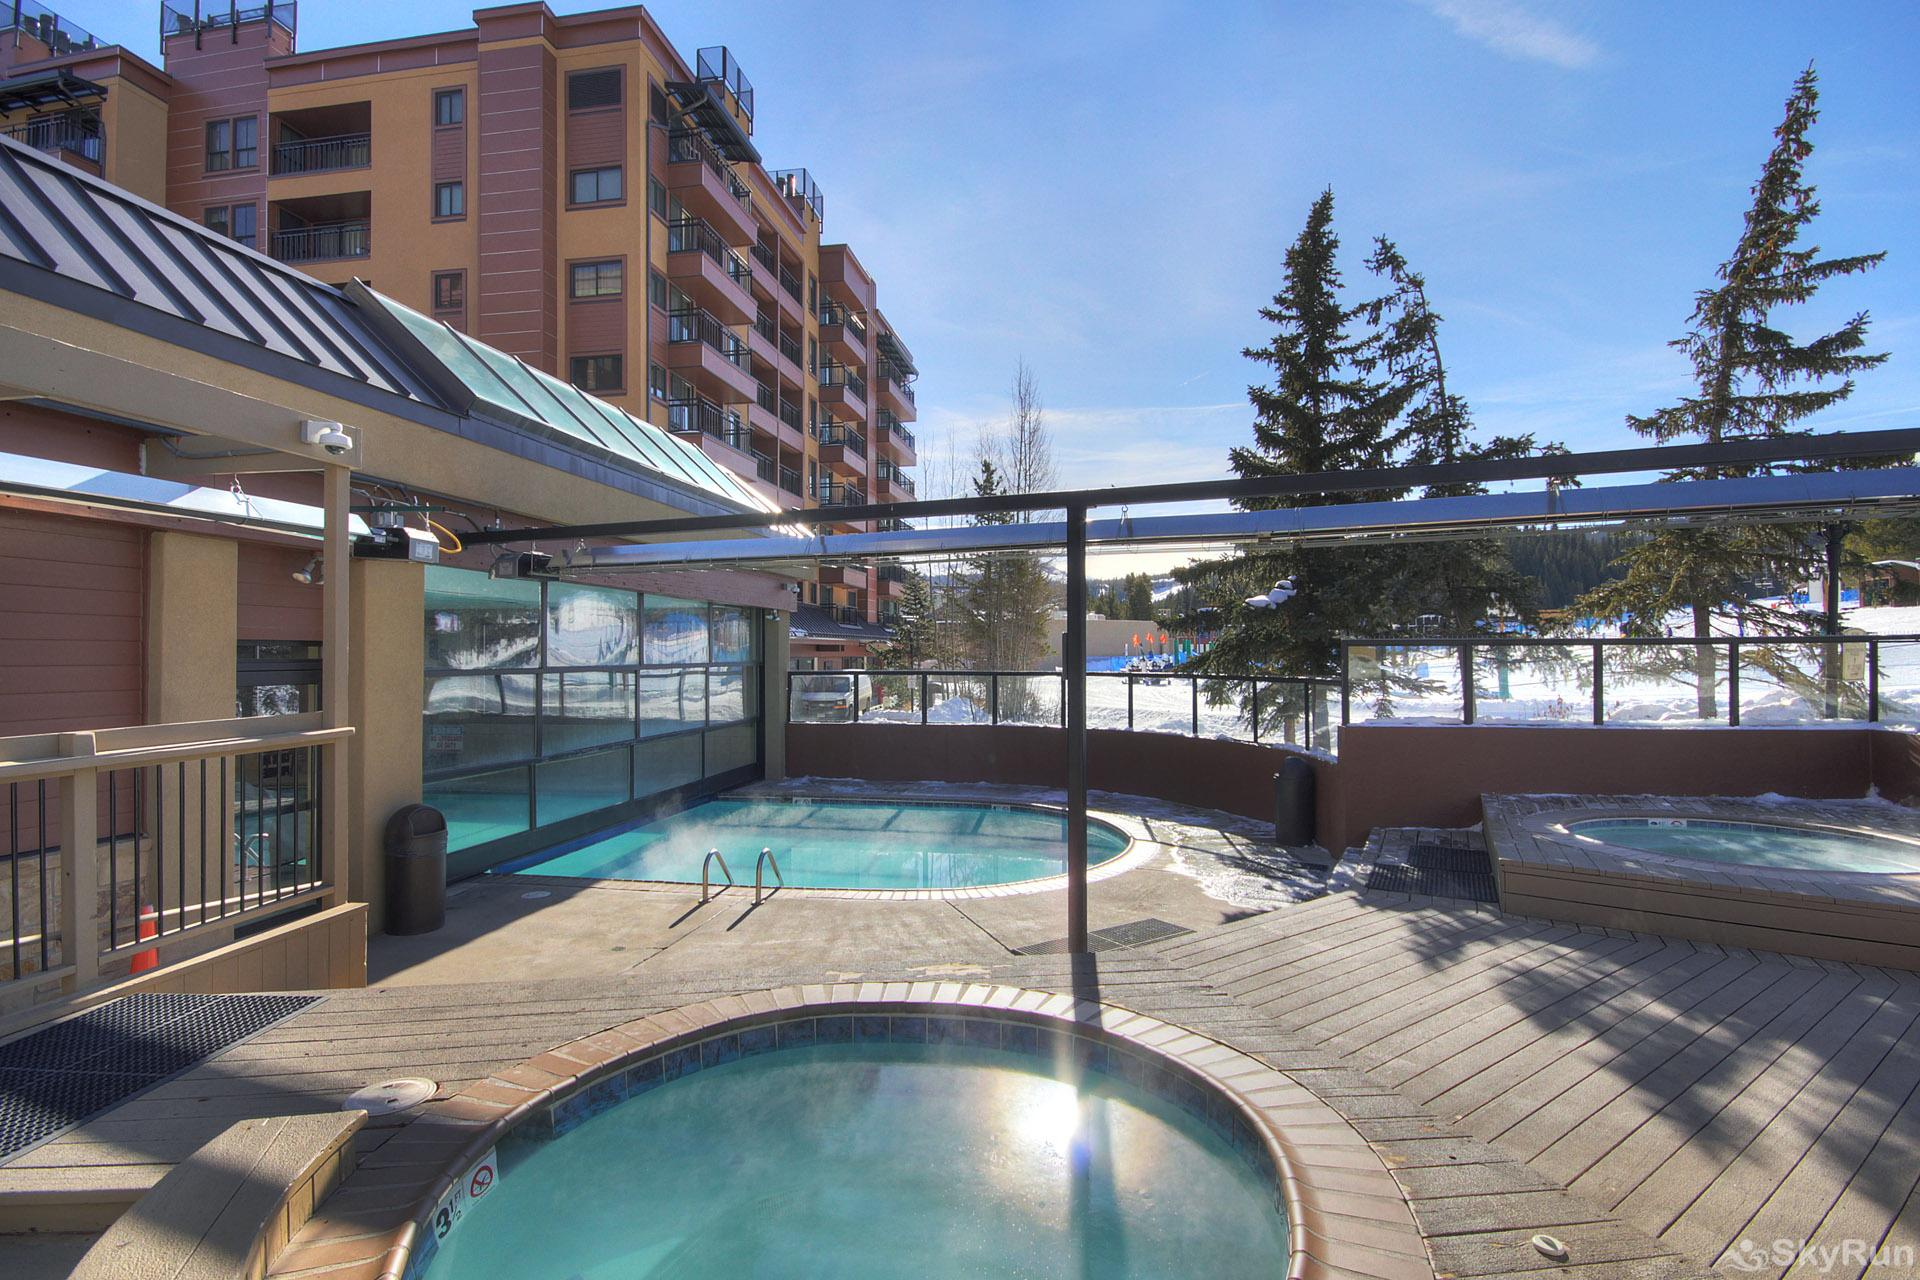 Village at Breck Antero 1503 Pool area with 2 outdoor hot tubs